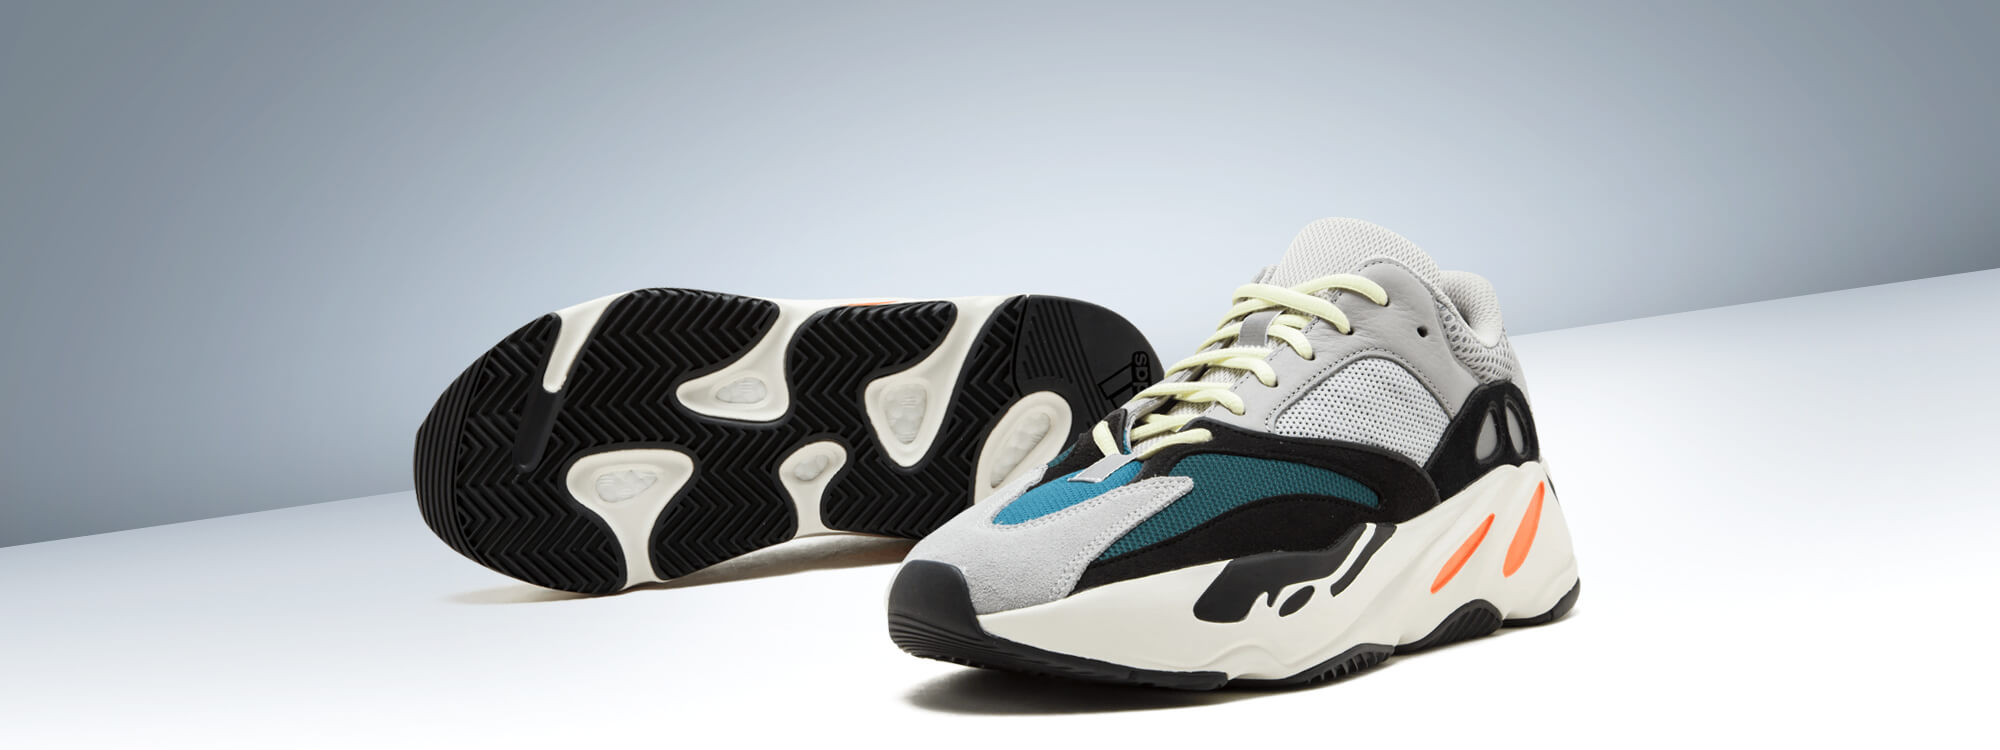 Price of Womens Adidas Yeezy Boost 700 Wave Runner shoes online